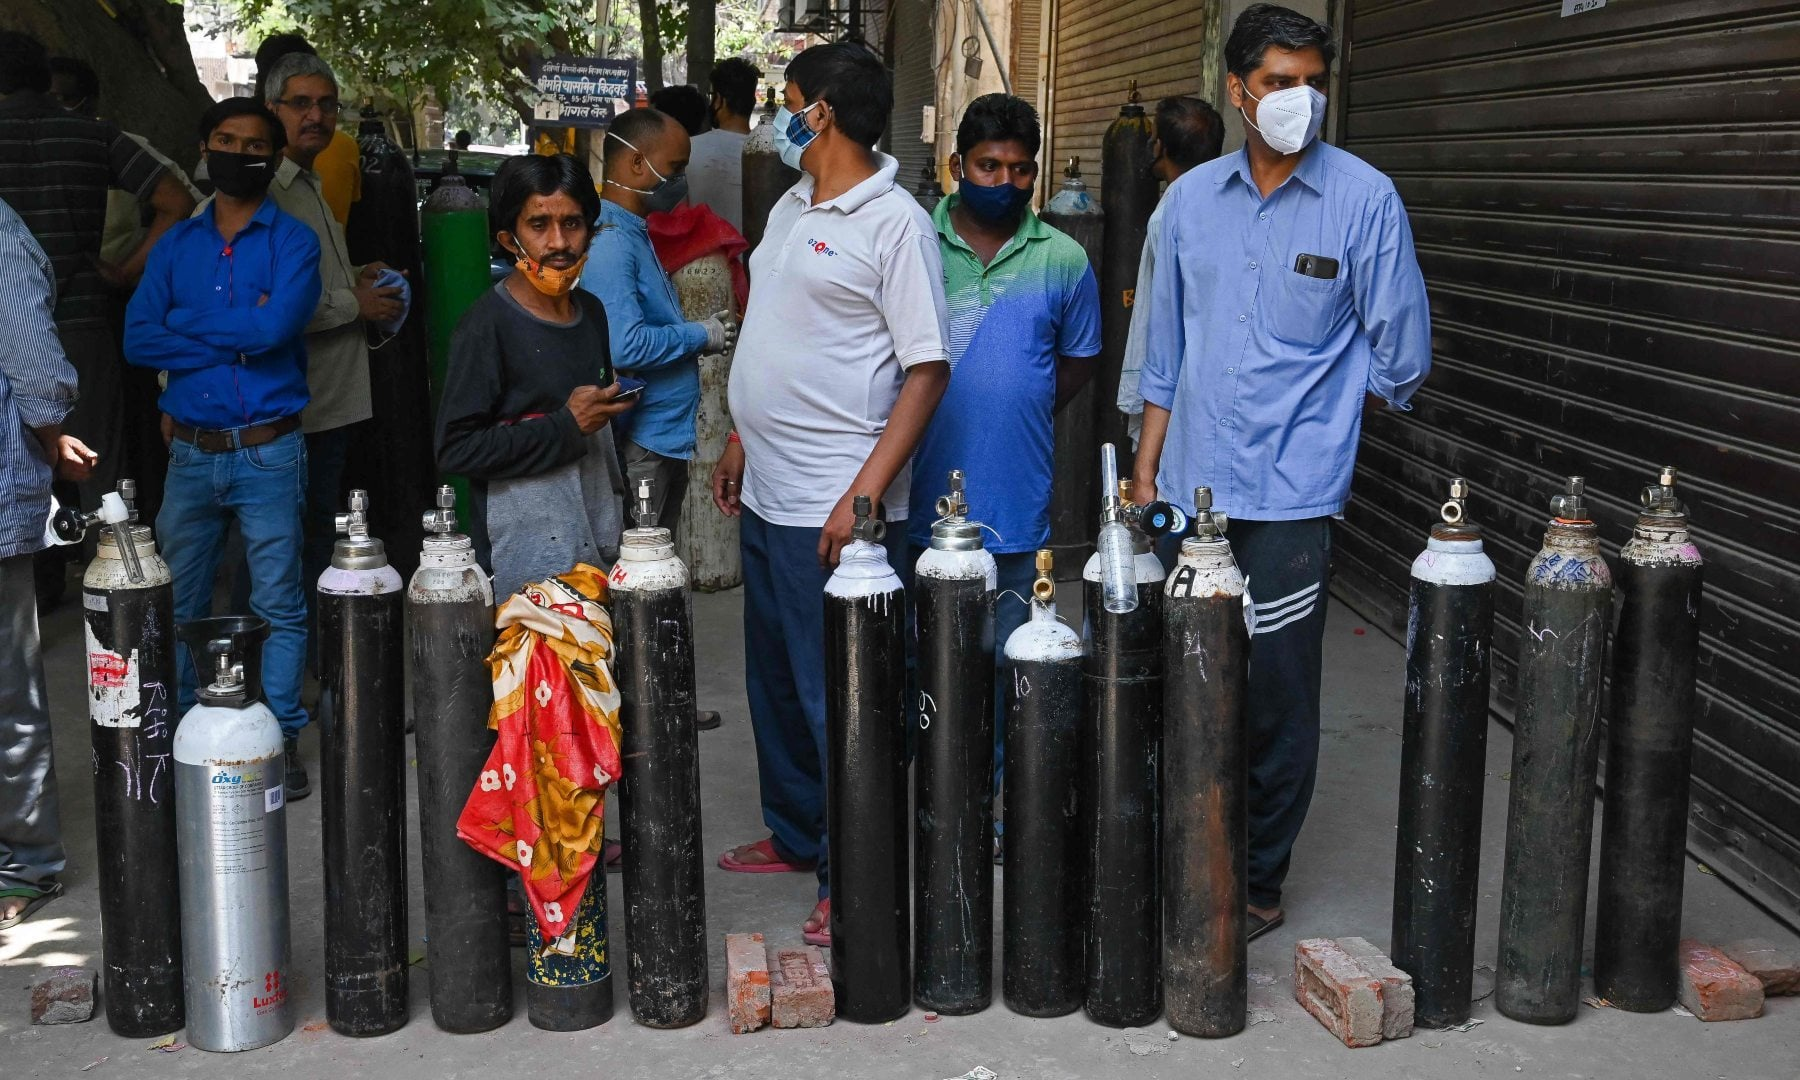 People wait to refill their medical oxygen cylinders for Covid-19 patients under home quarantine at a private refill centre in New Delhi on May 4. — AFP